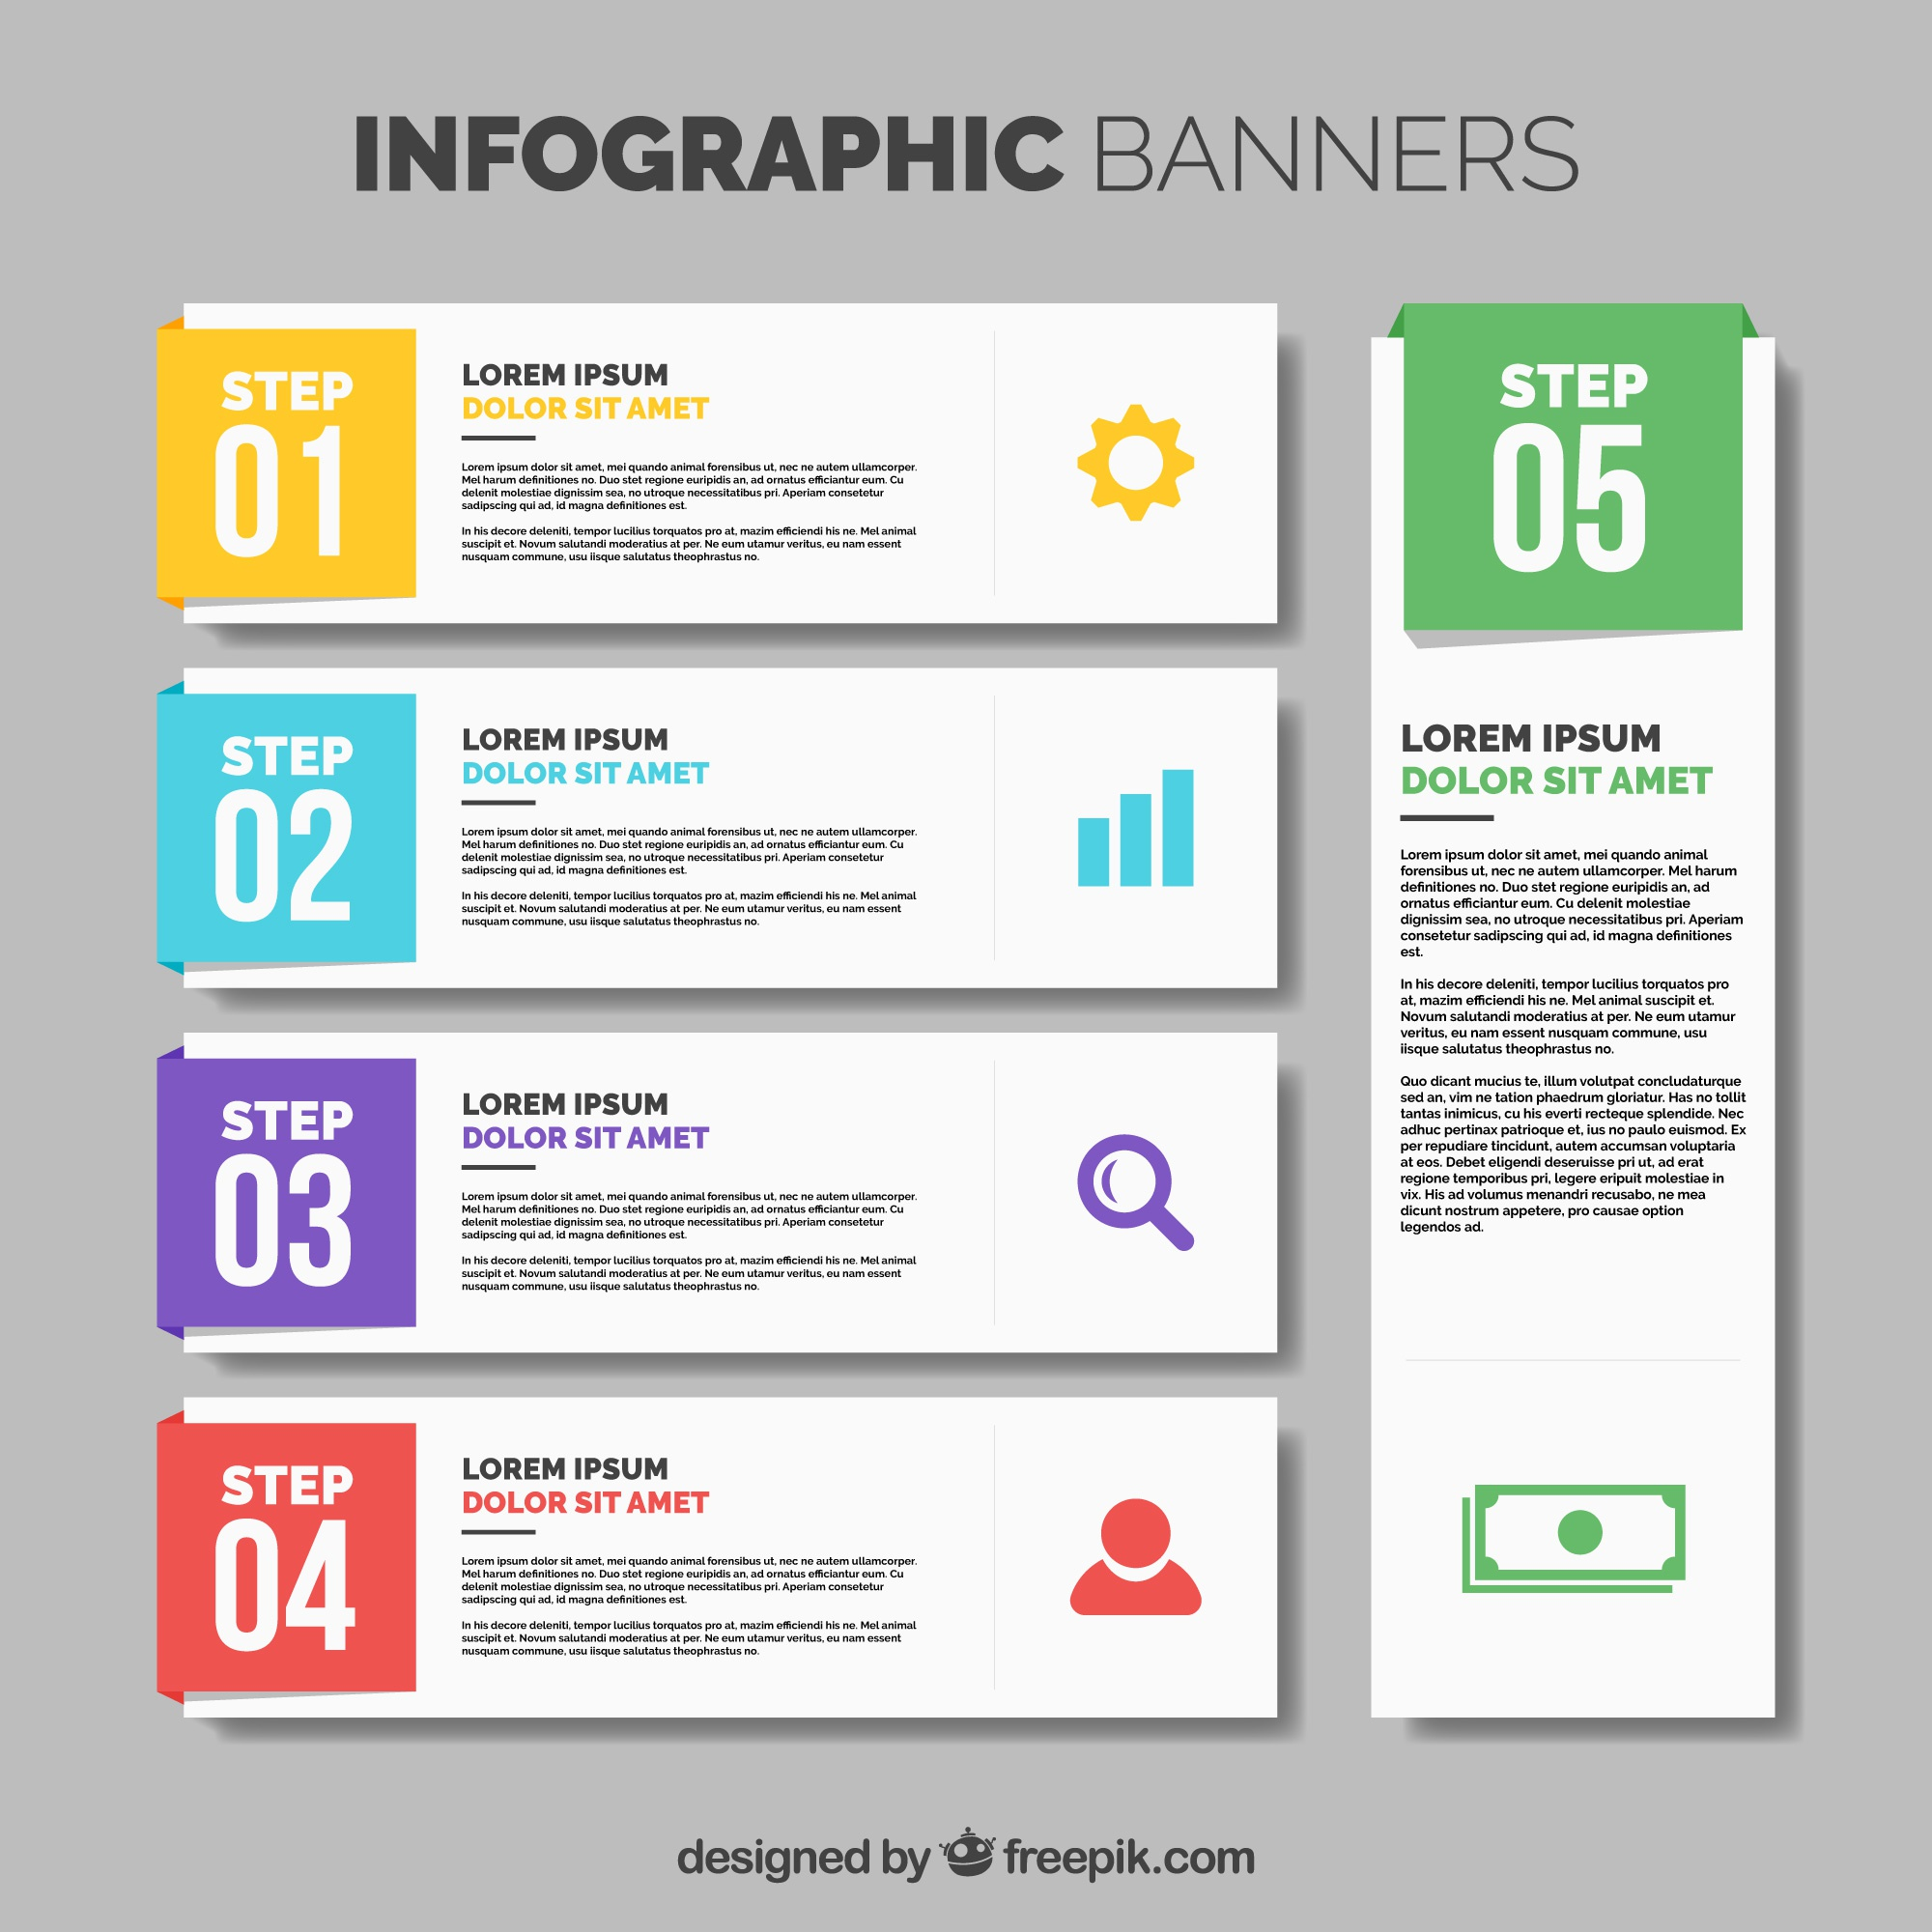 Collection of five infographic banners with color details